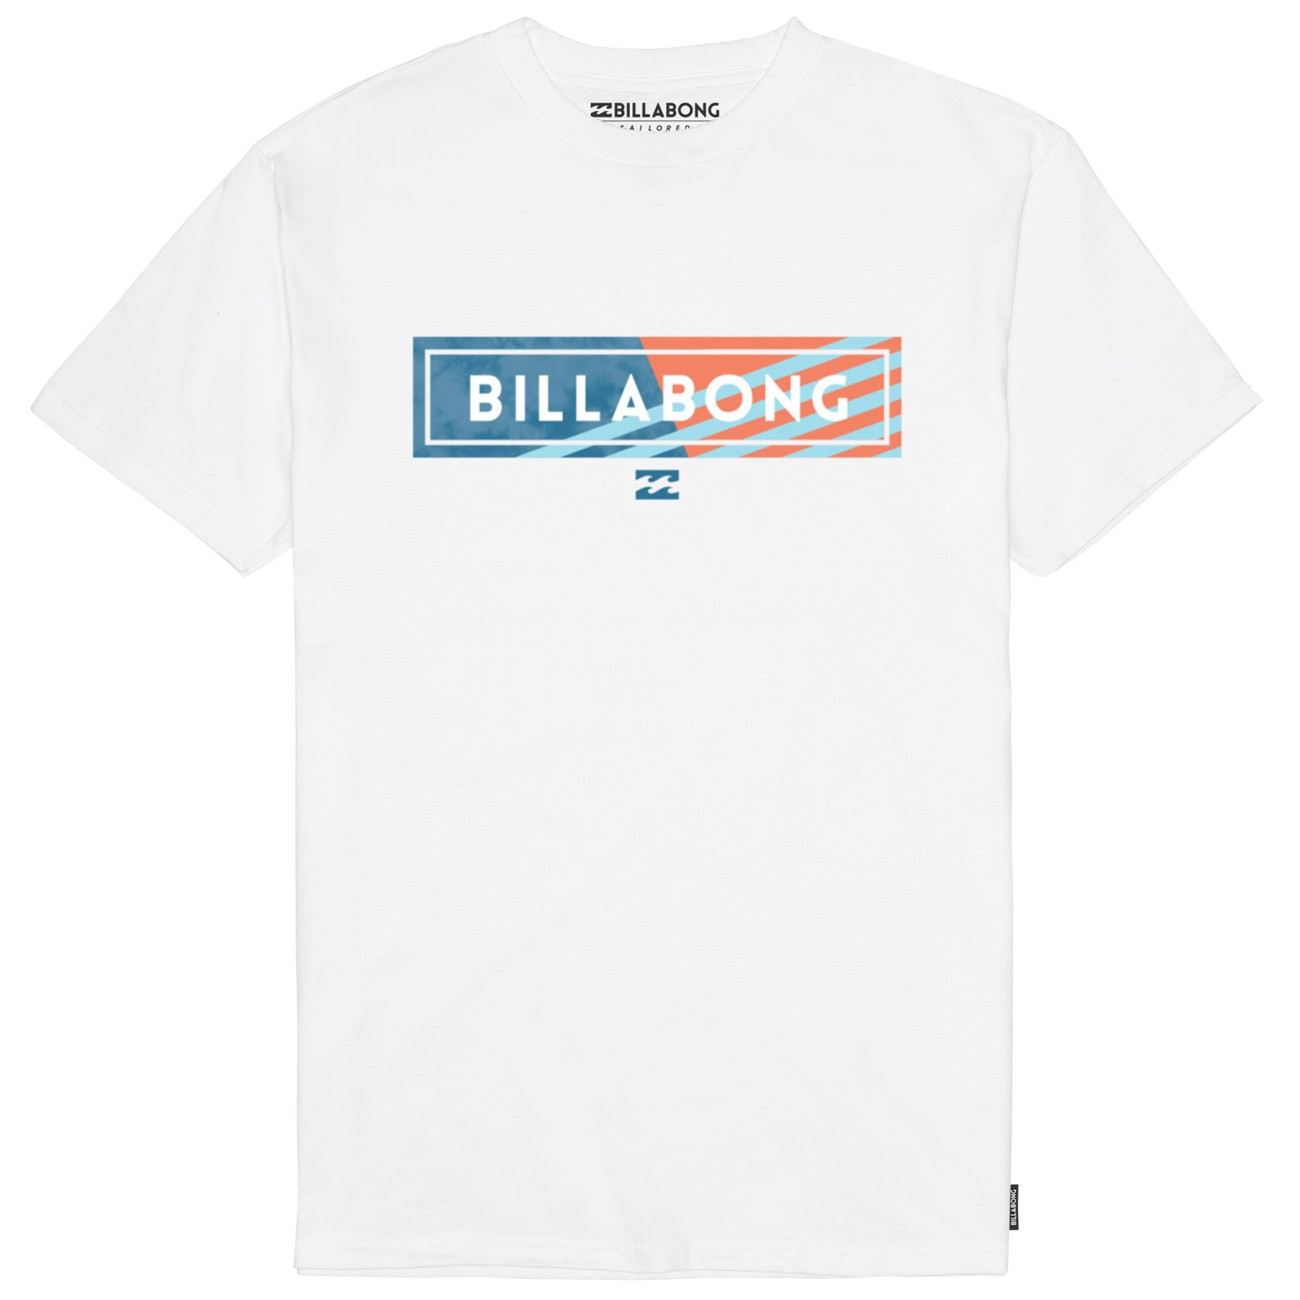 billabong tshirt  Billabong Blocked T-Shirt - White